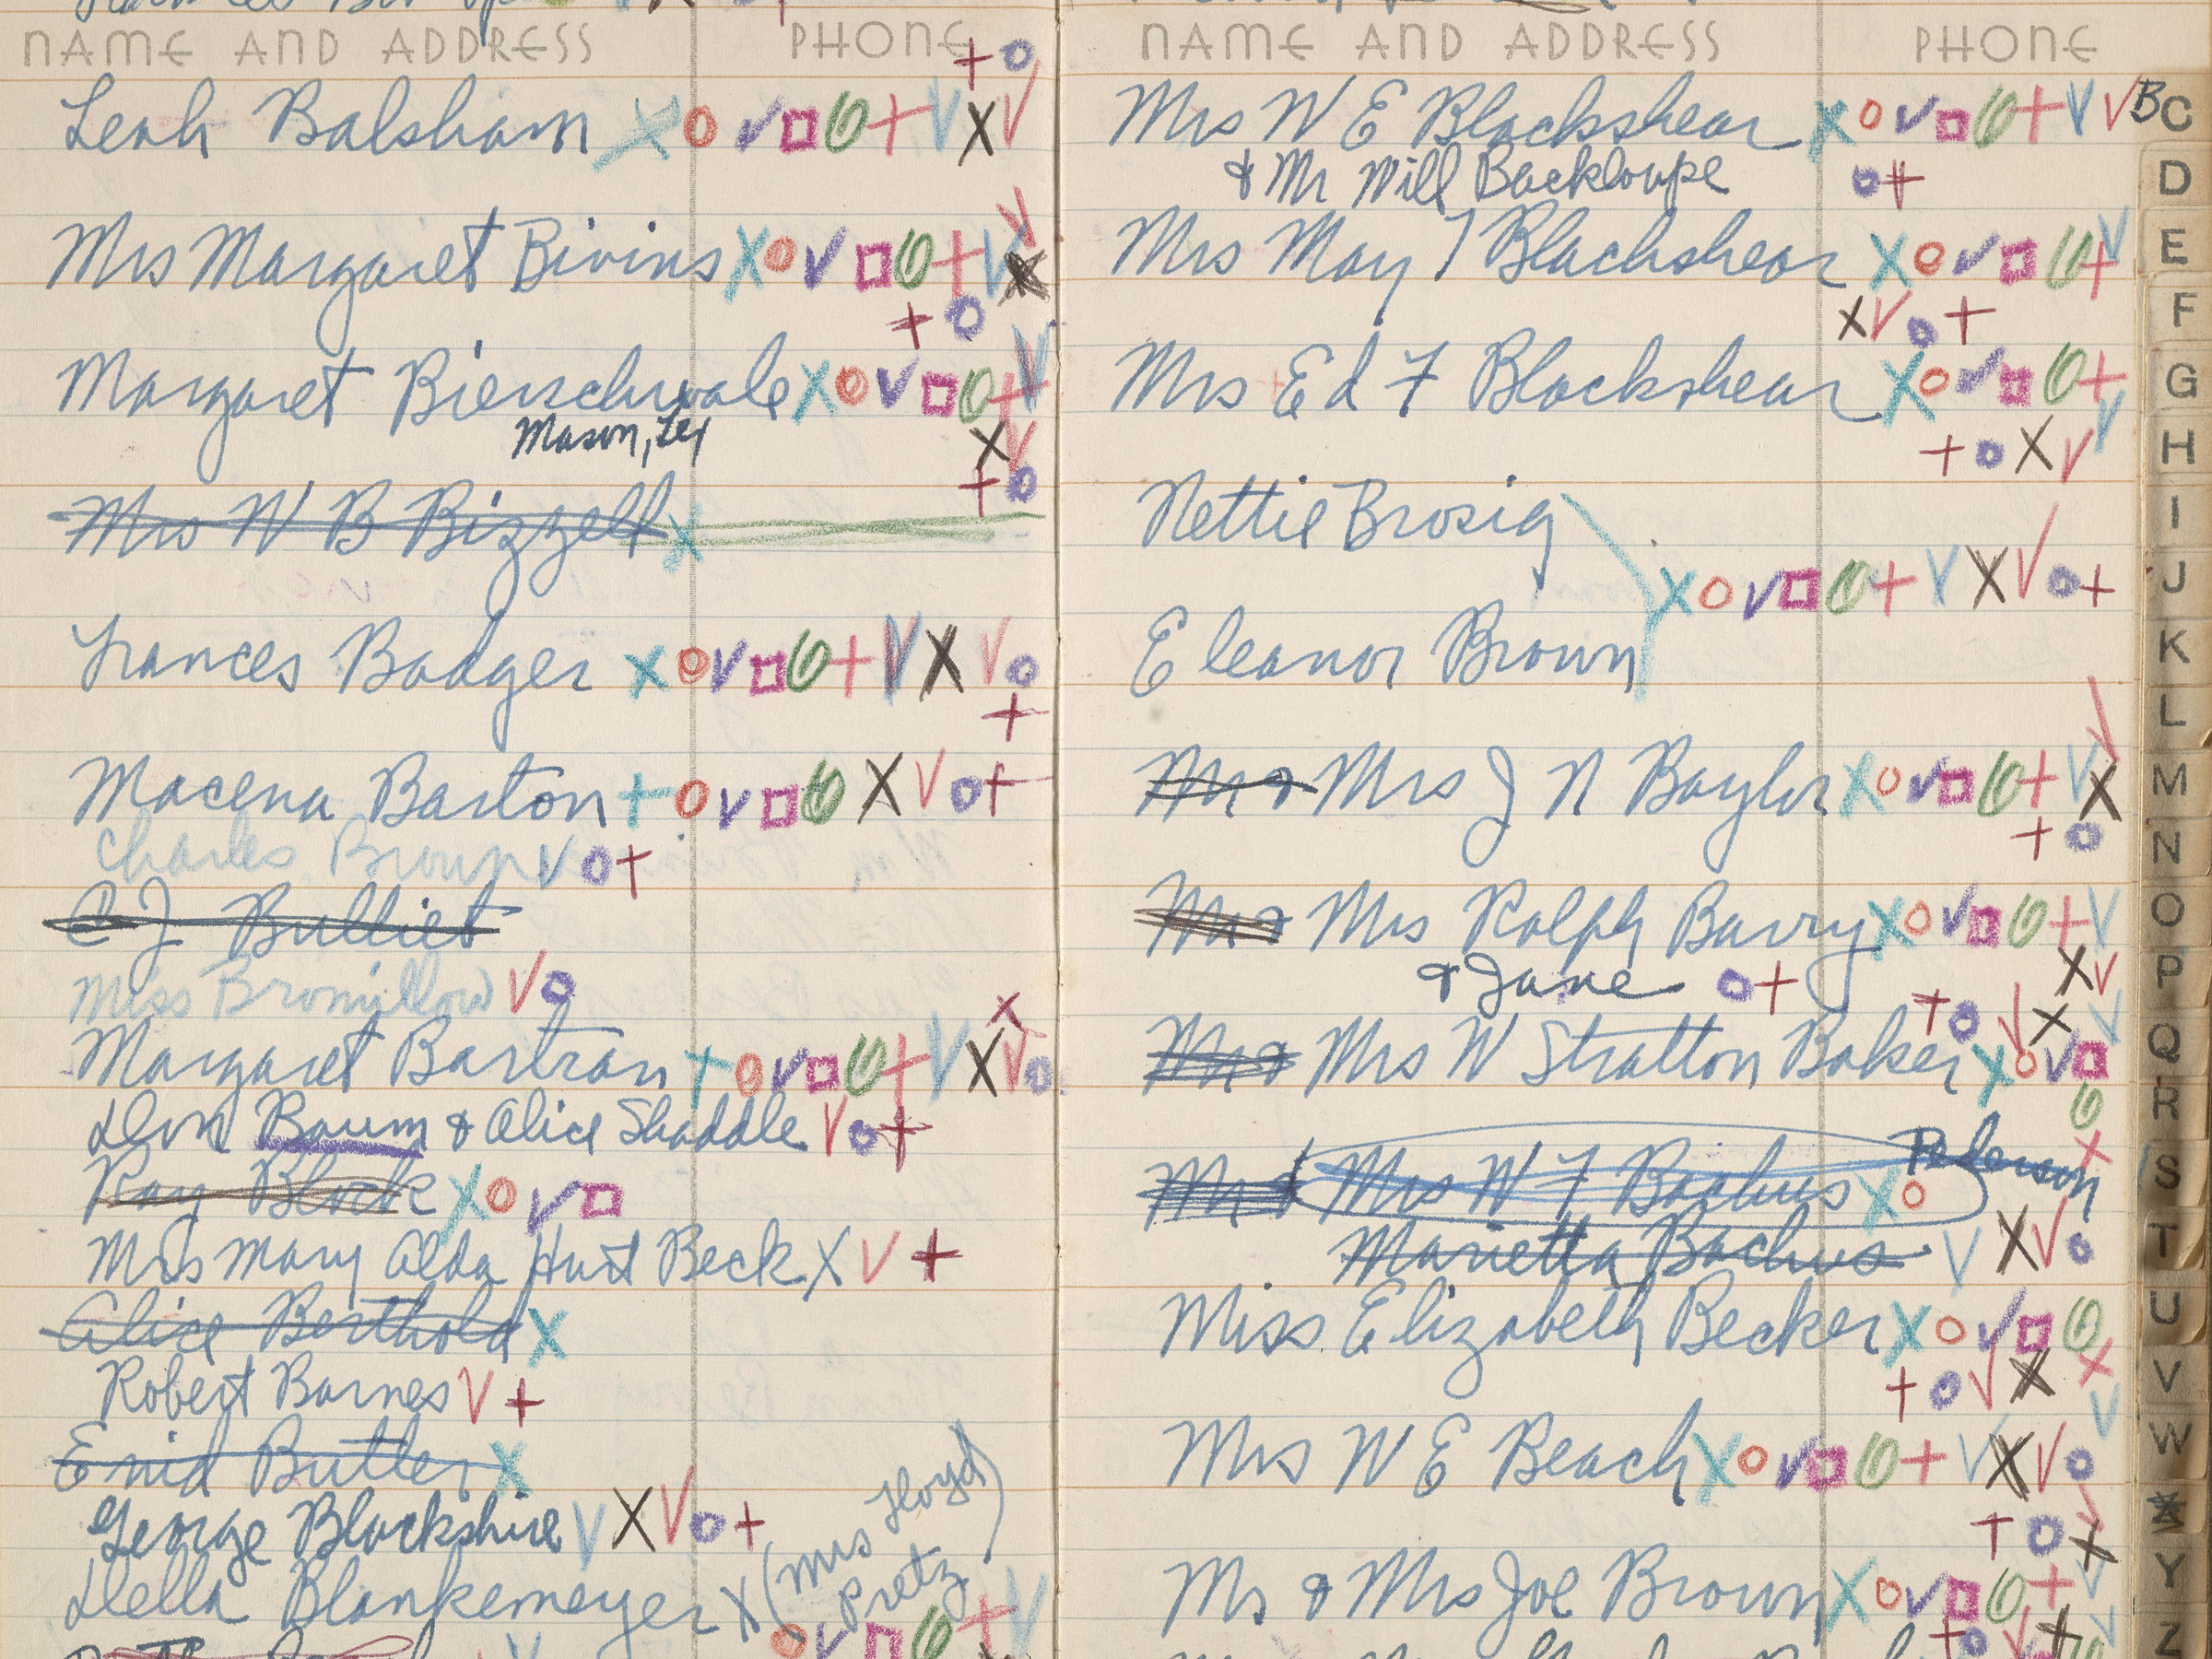 archives of american art smithsonian institution jackson pollock and lee krasners address book circa 1950 1956 jackson pollock and lee krasners address